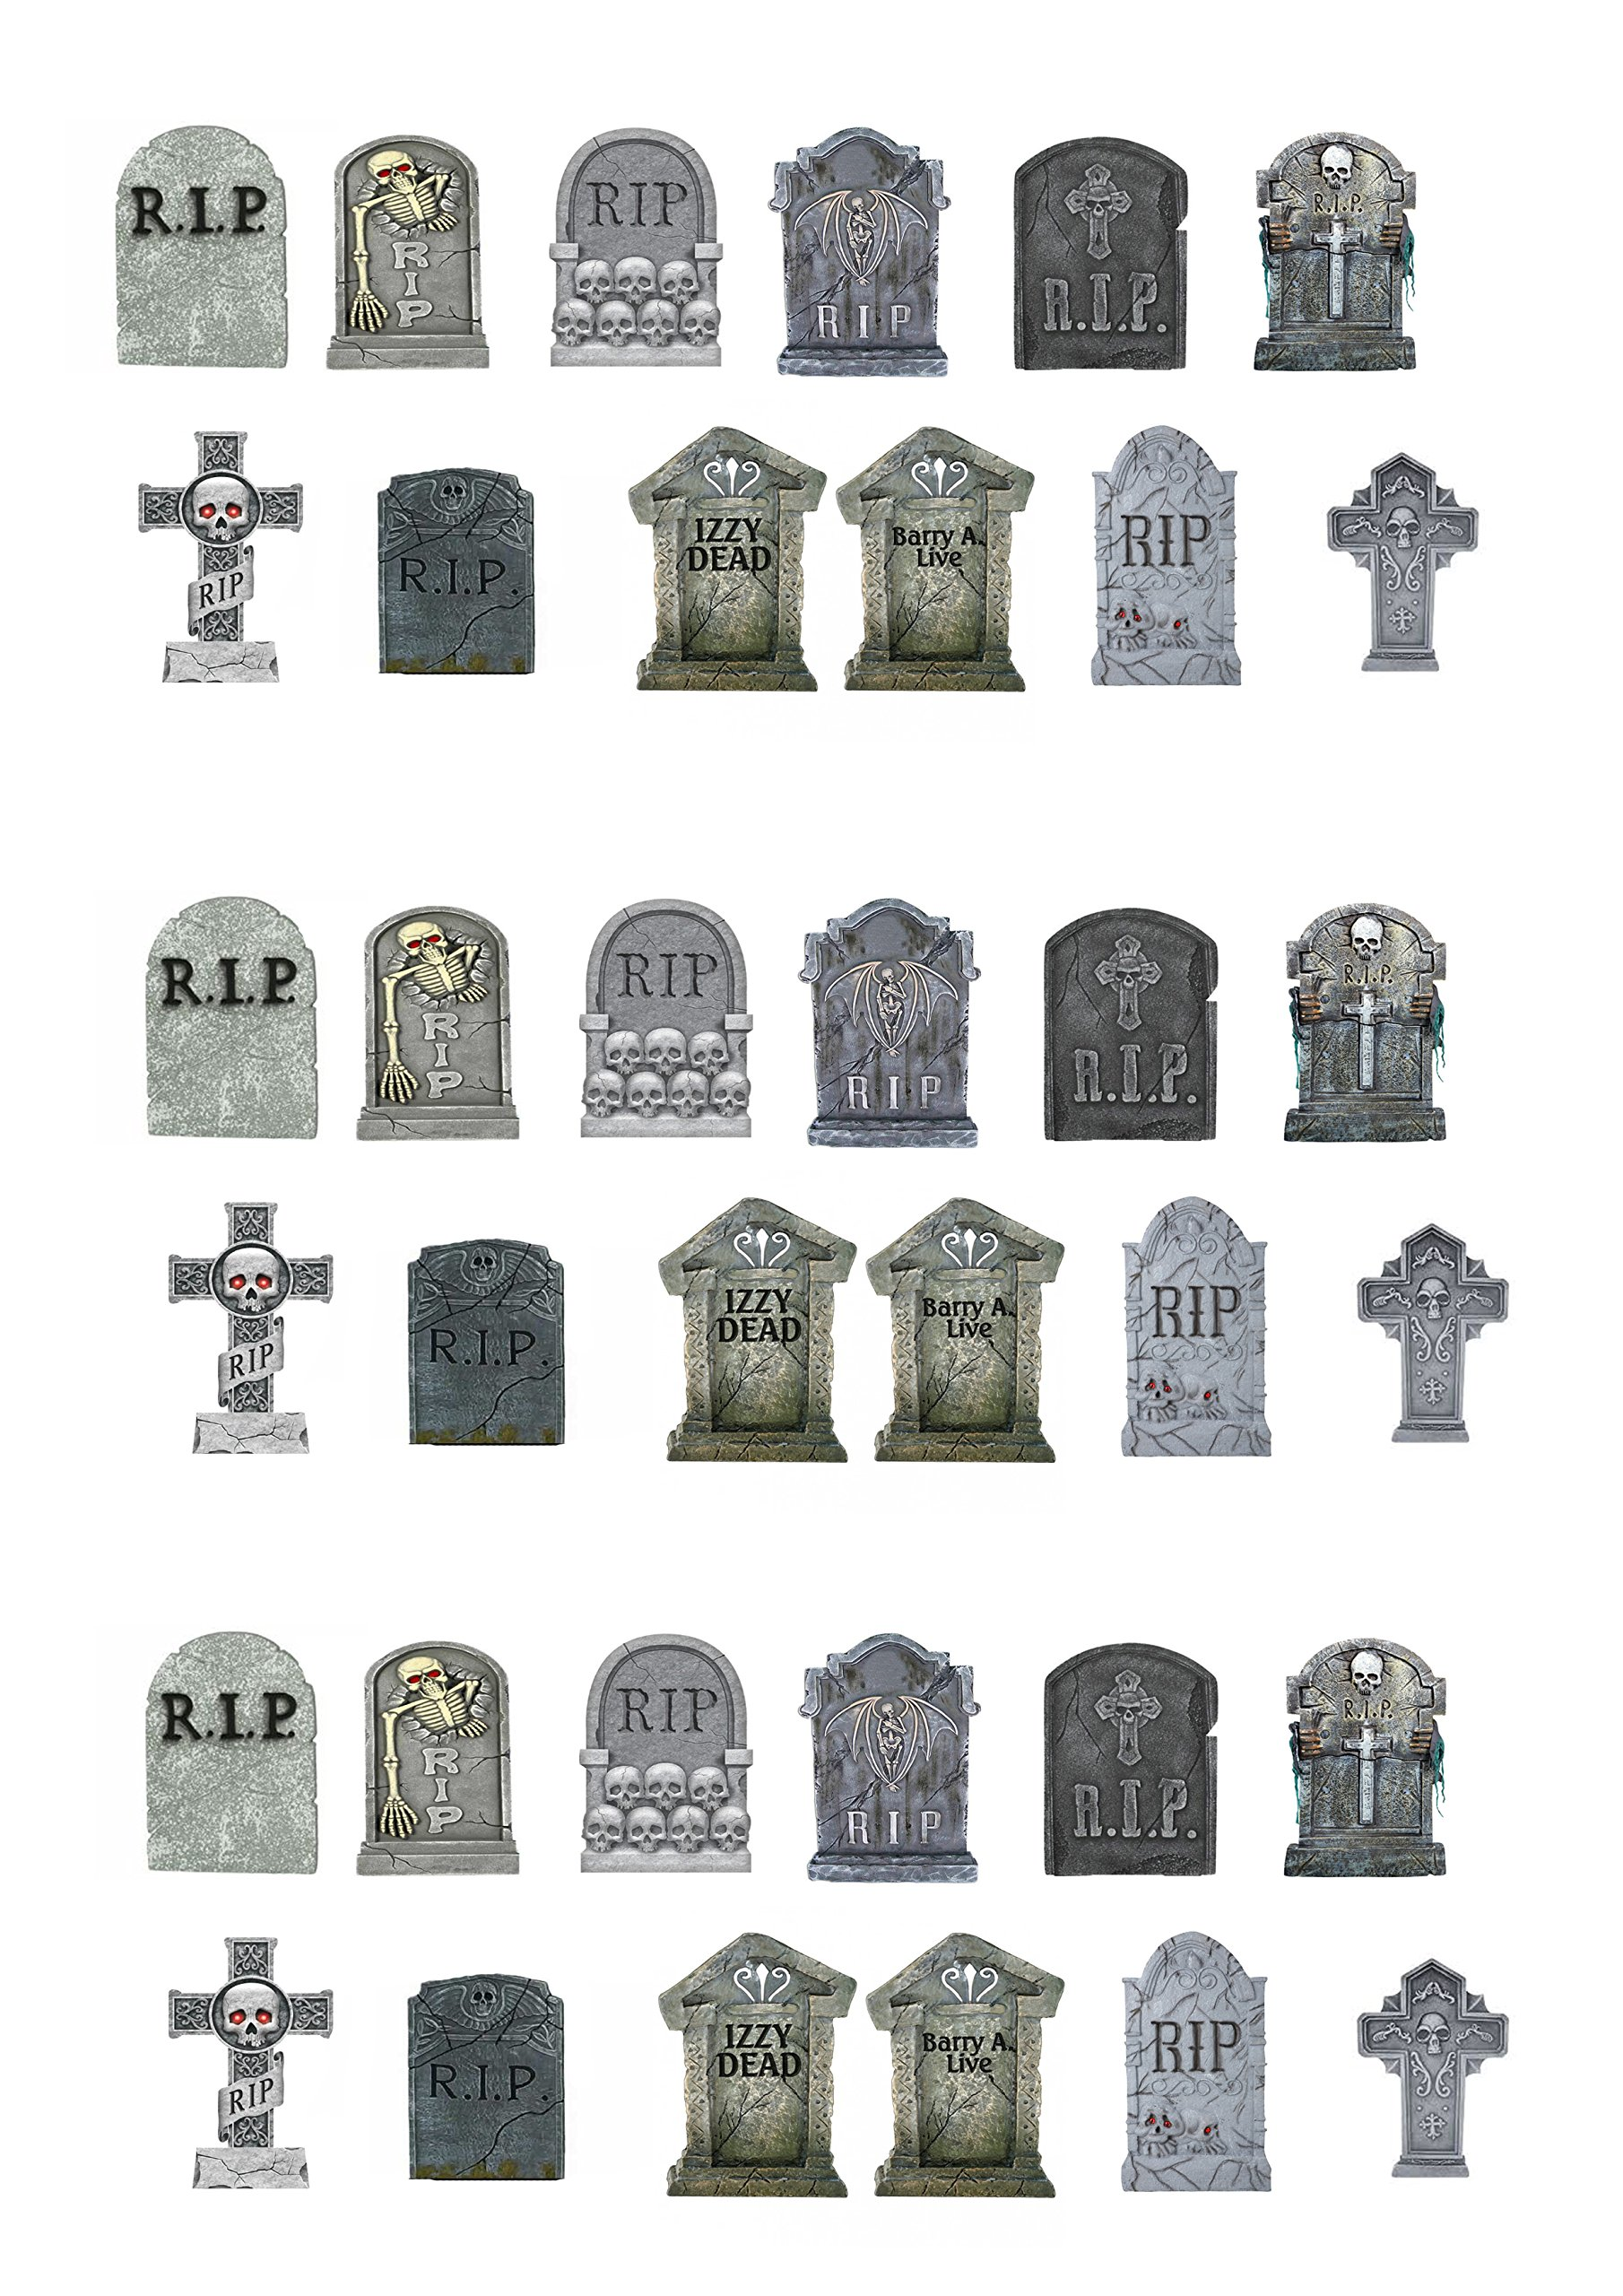 36 Stand Up Halloween Gravestones Premium Edible Wafer Paper Cake Toppers Decorations